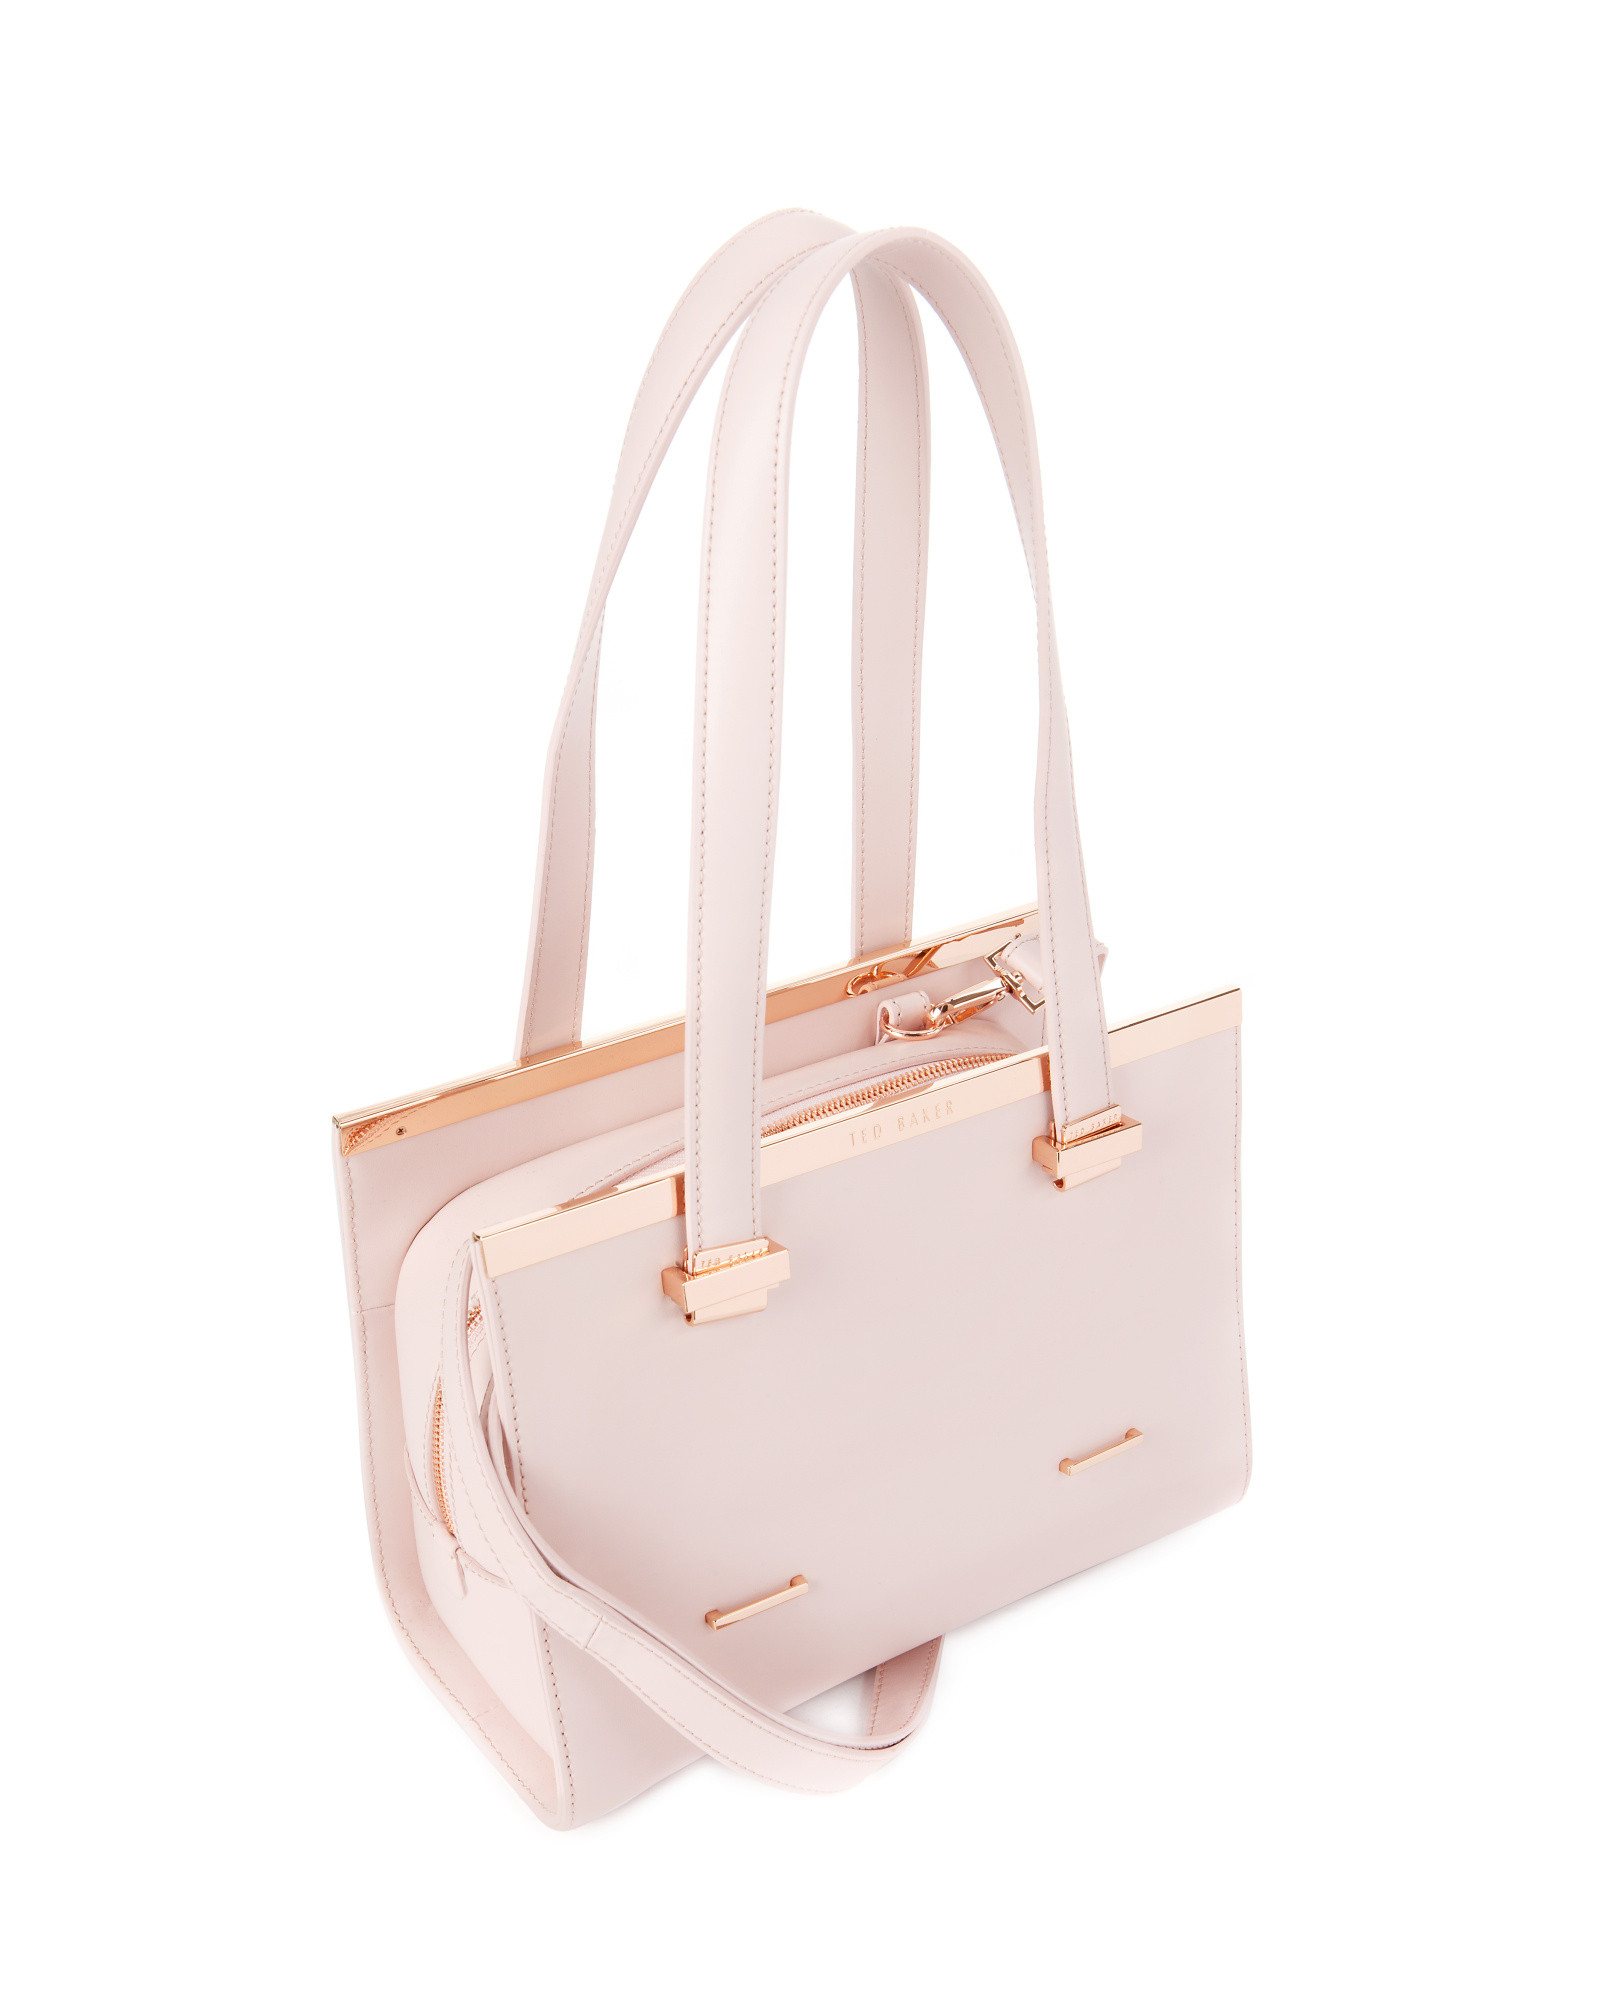 4b2afd84ba6bbc Ted Baker Leather Metal Bar Tote Bag in Pink - Lyst